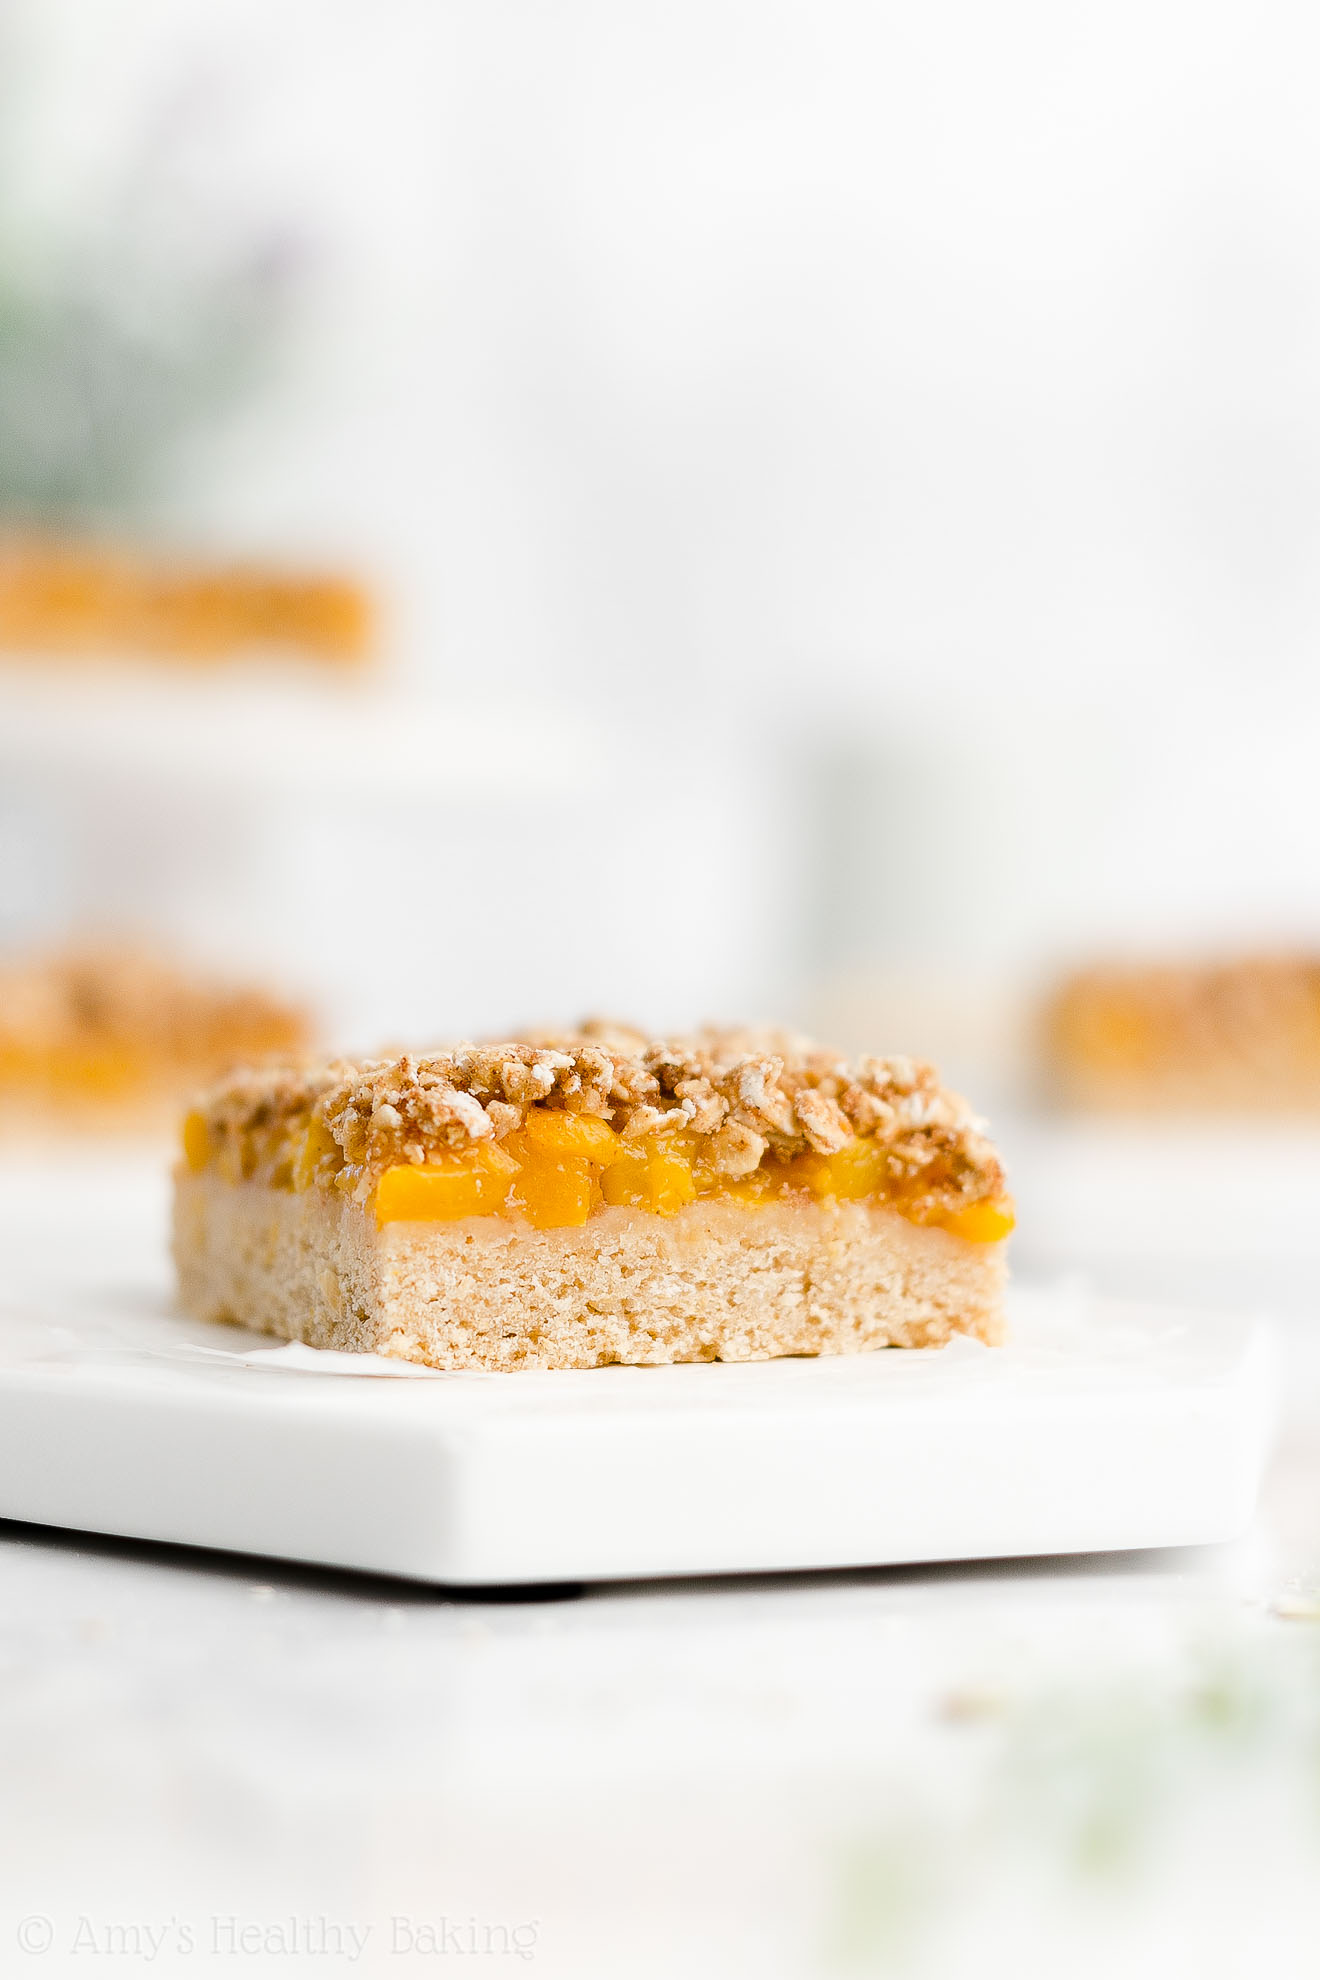 Best Easy Healthy Low Sugar Vegan Gluten Free Peach Oatmeal Crumble Bars